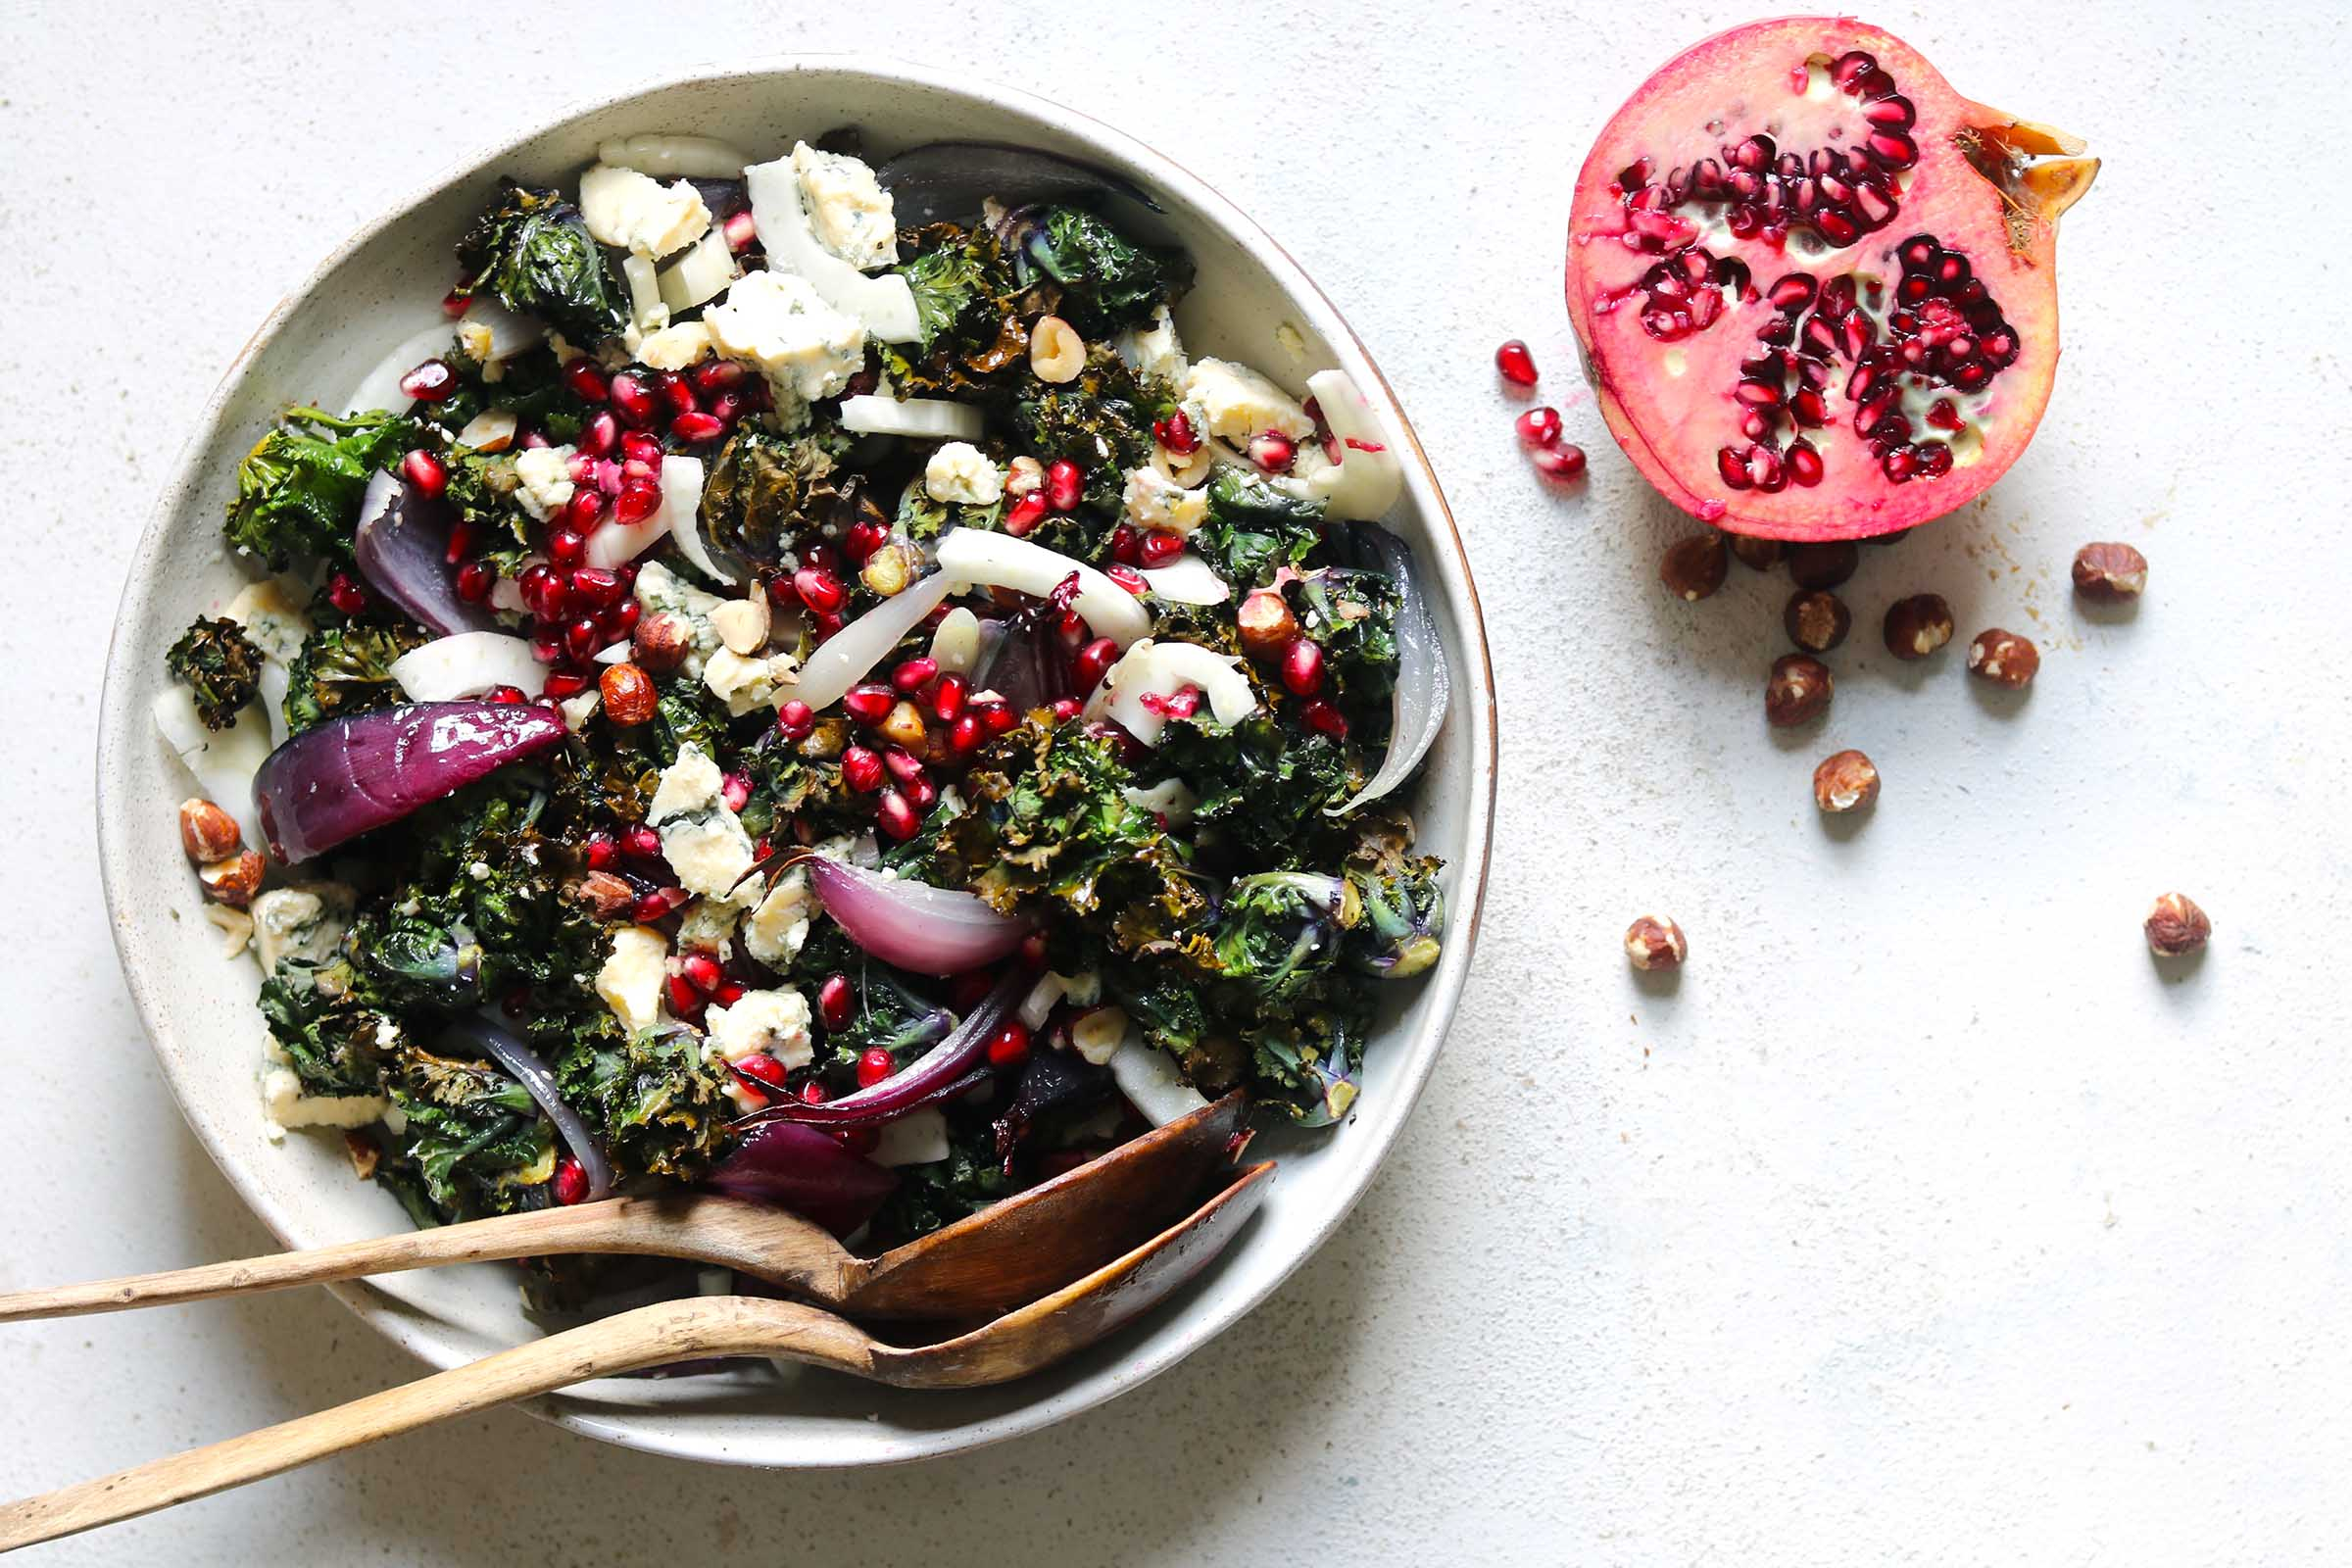 A Warm Winter Salad of Roasted Kalettes and Stilton